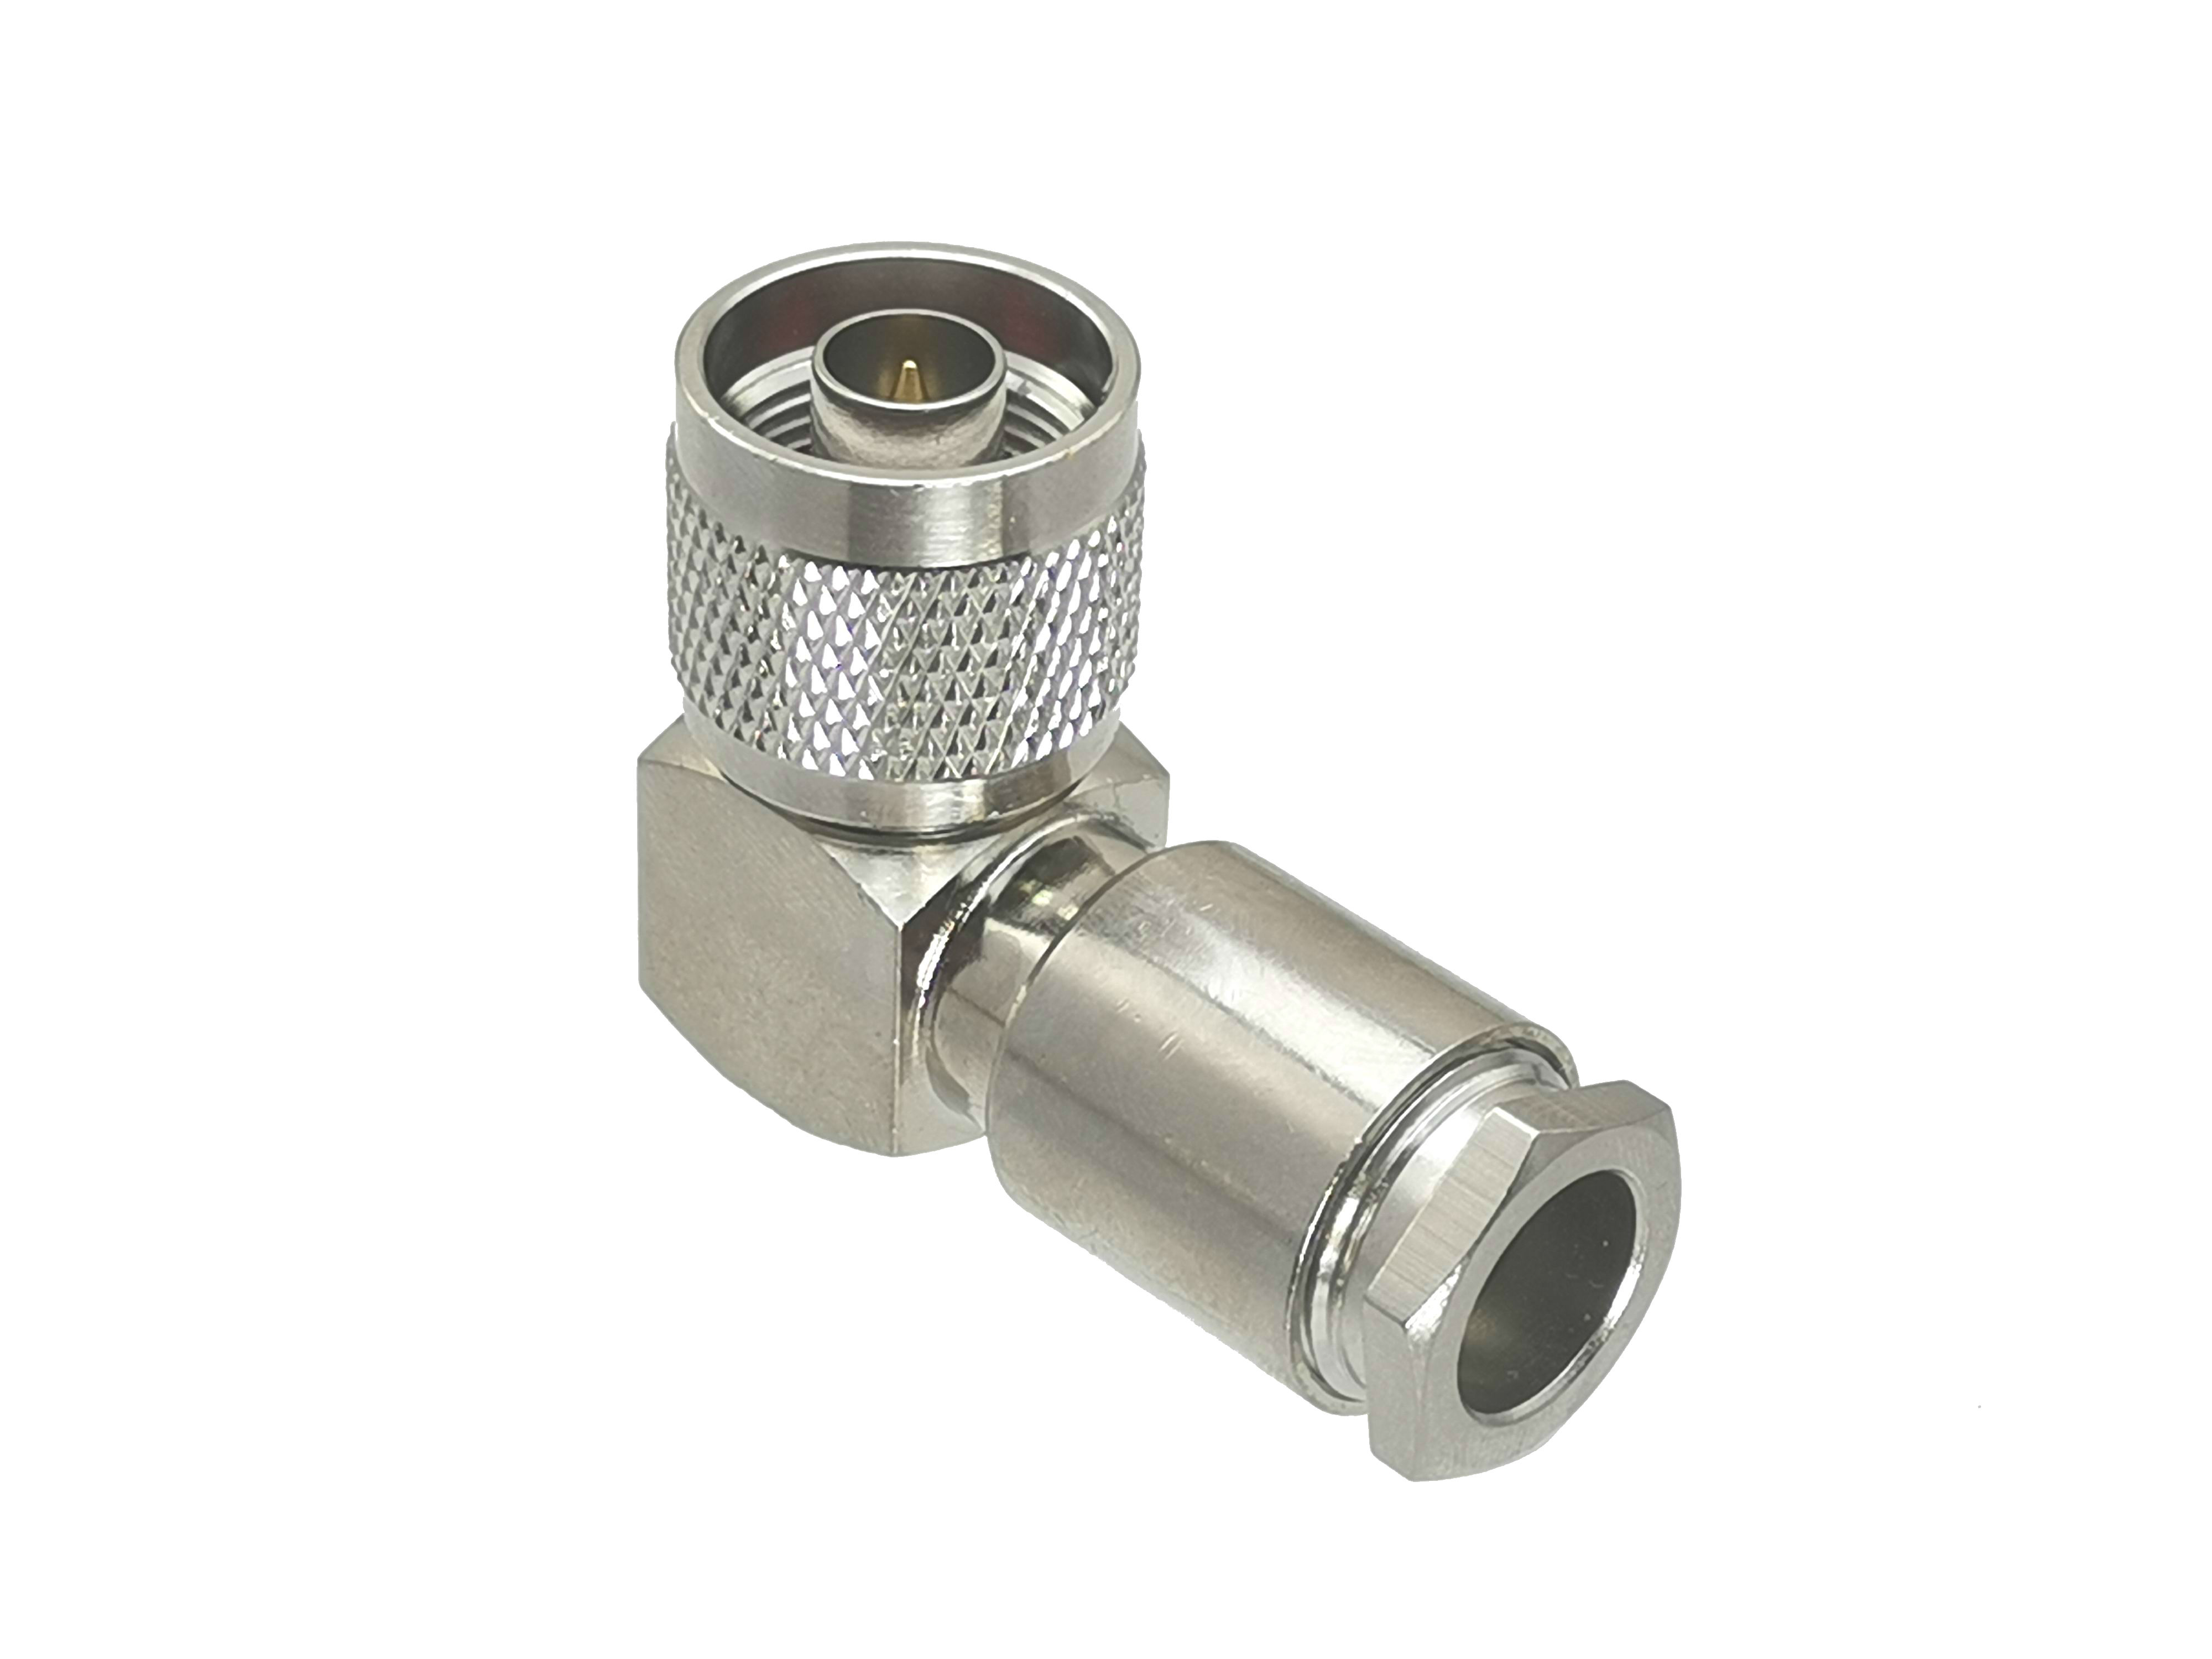 N Male Plug Right Angle Clamp RG8 165 LMR400 7D-FB RF Coaxial Connector